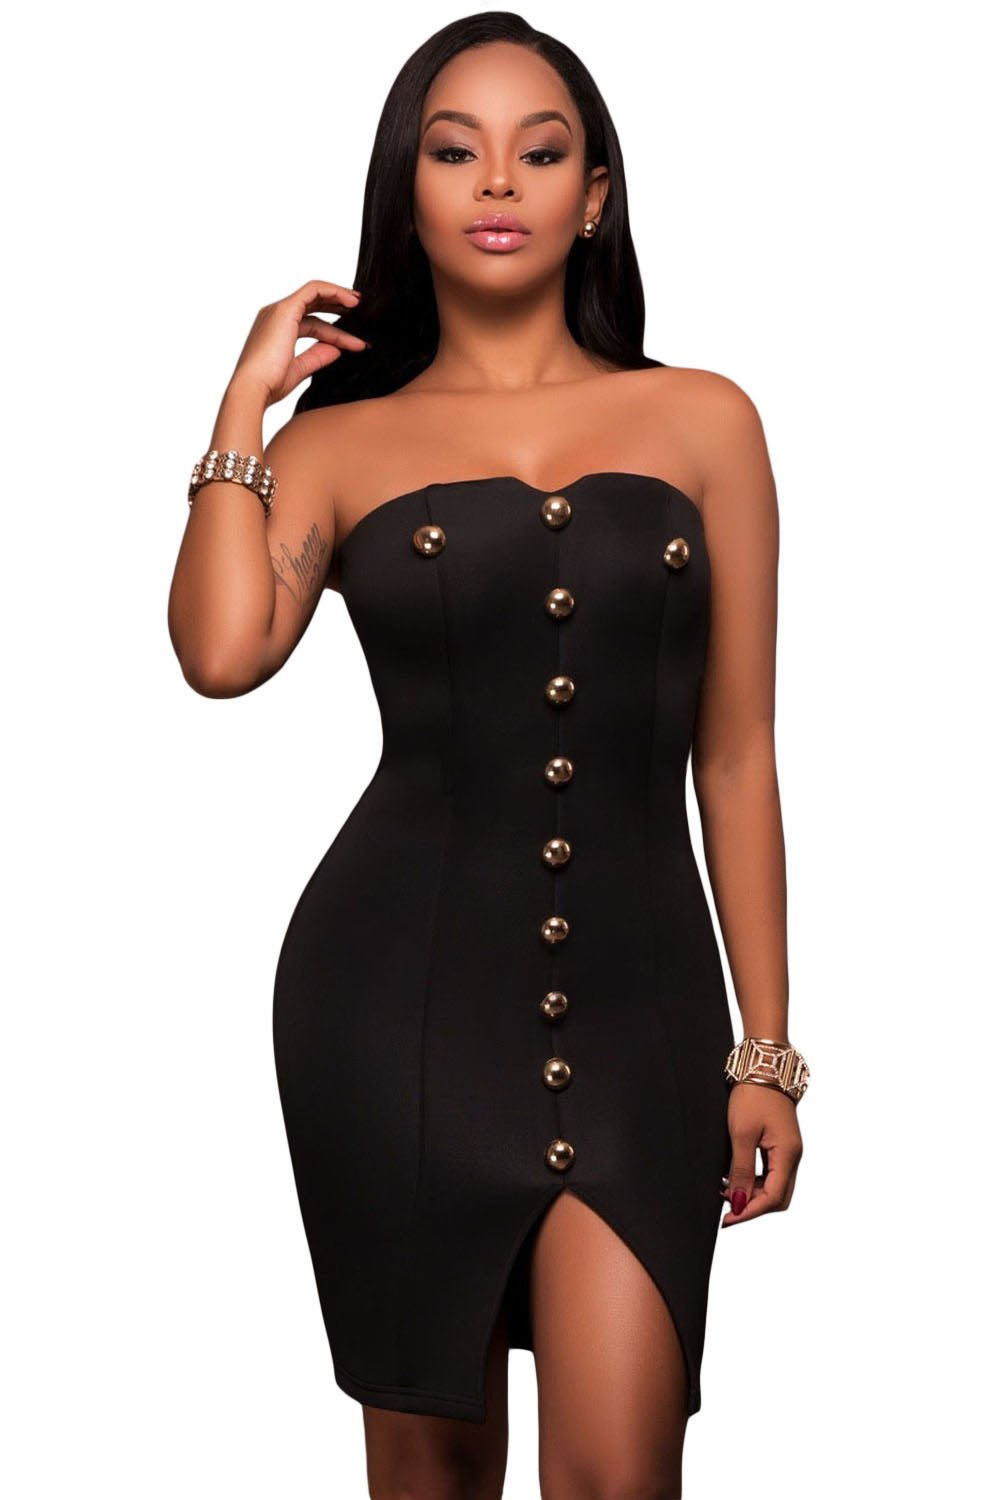 50ddd709b6 Gold Button Detail Strapless Black Mini Dress